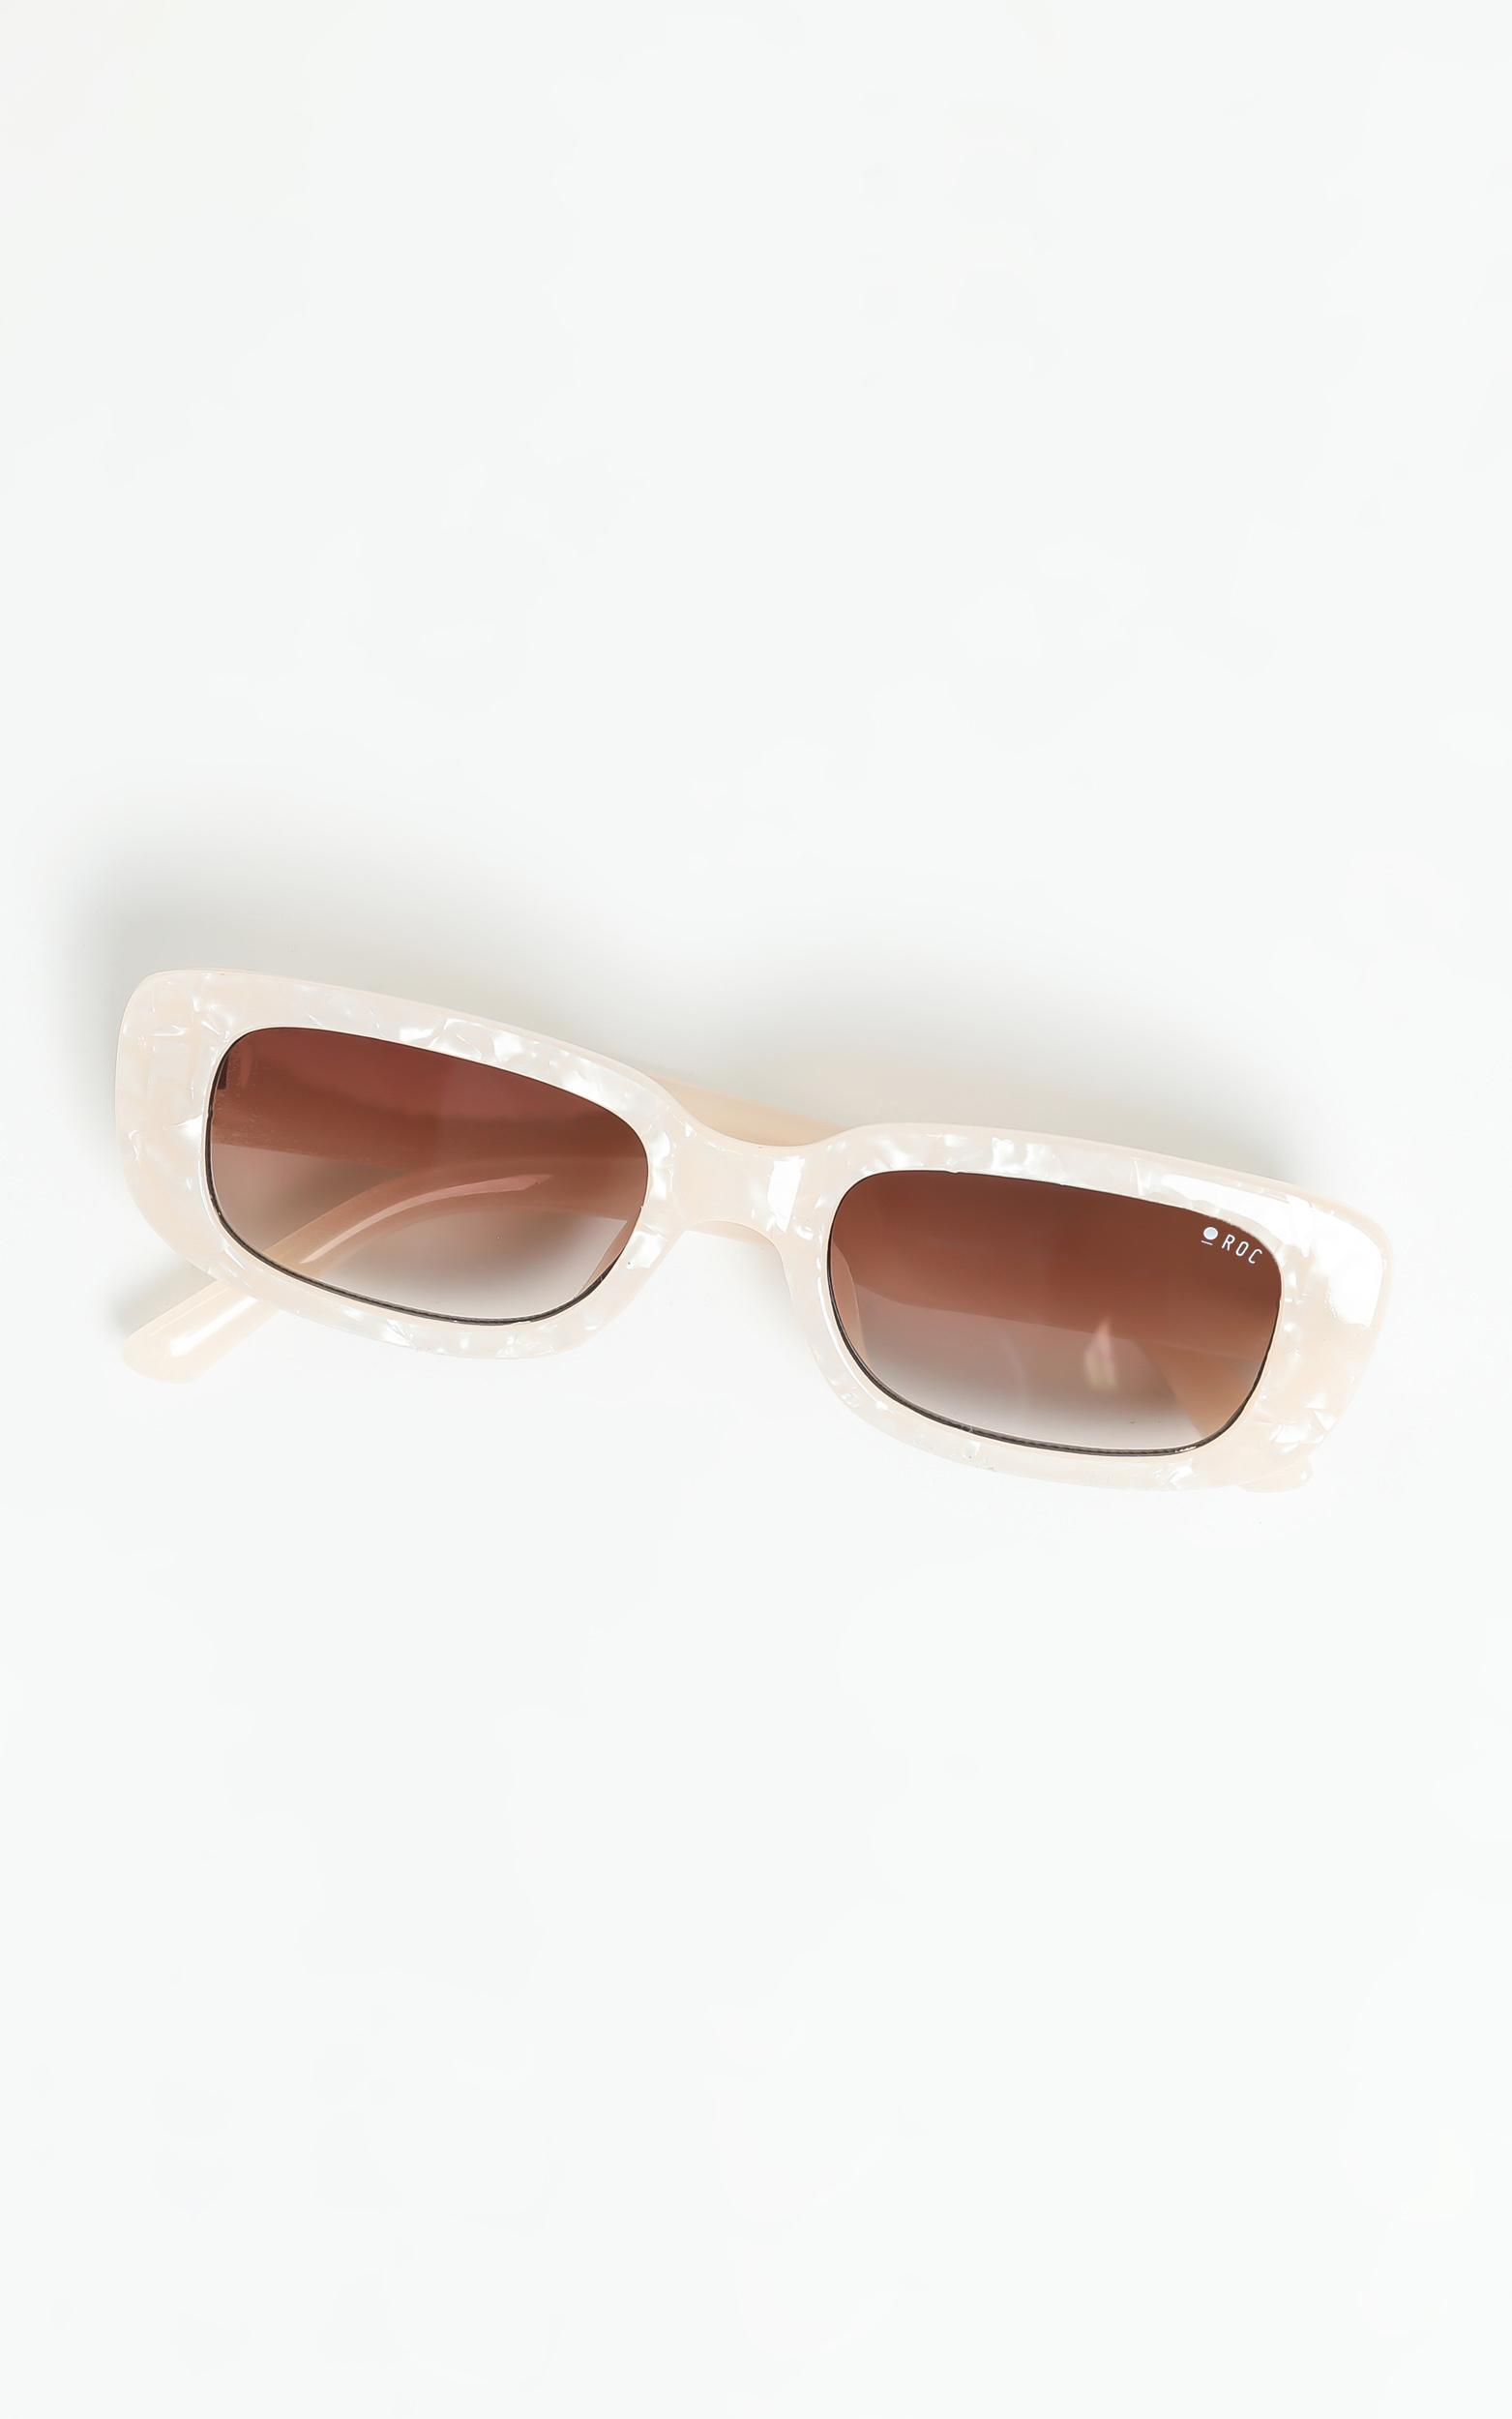 Roc - Creeper Sunglasses in Pearl White, , hi-res image number null